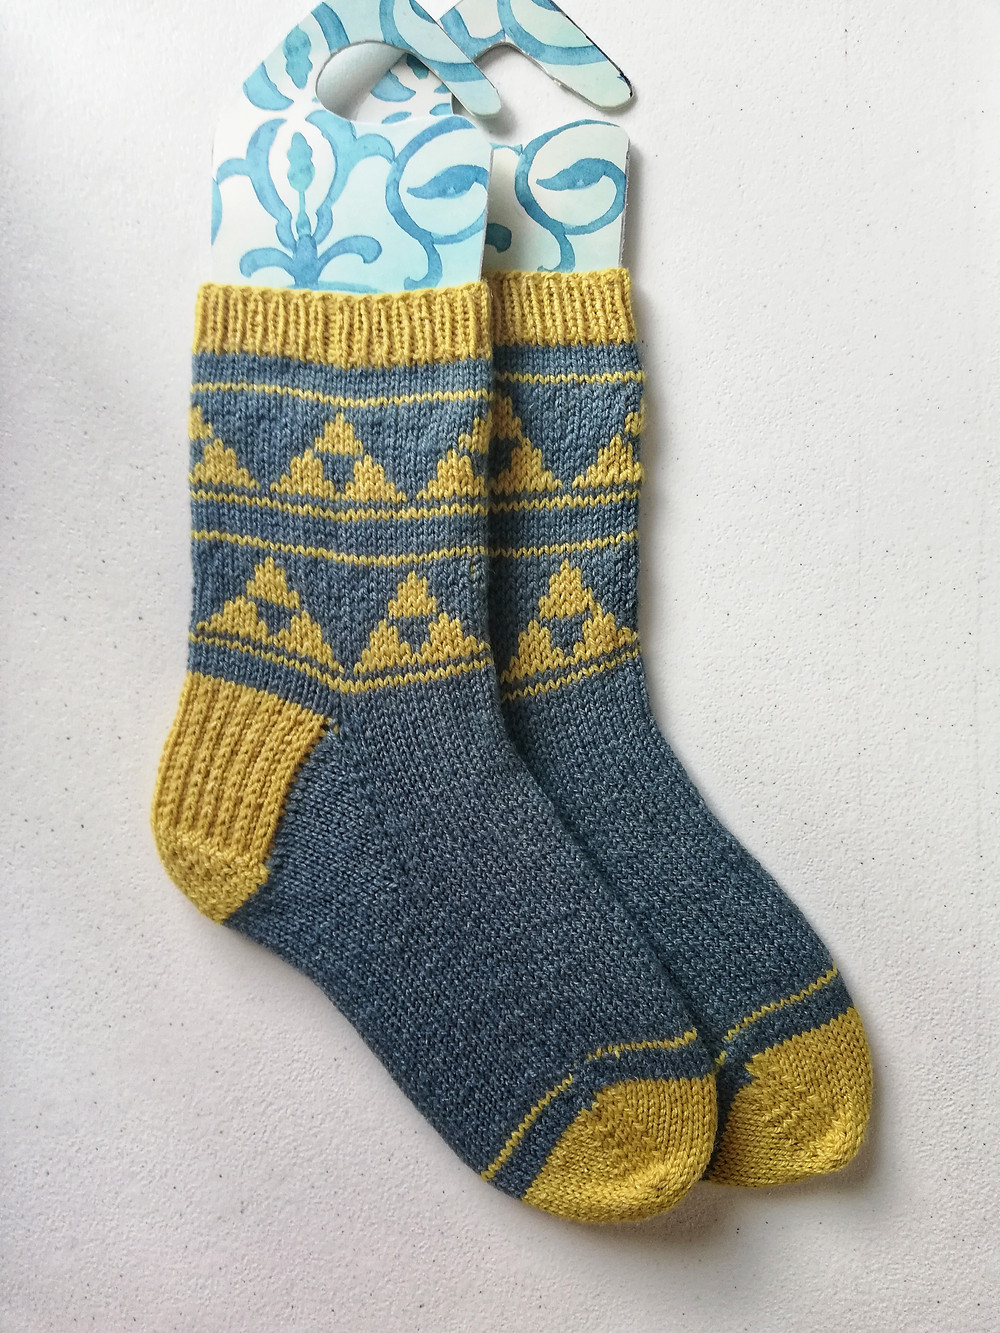 Socks with a triangle motif colorwork pattern on the leg. The cuff, heel, and toe are knit in the contrast color.